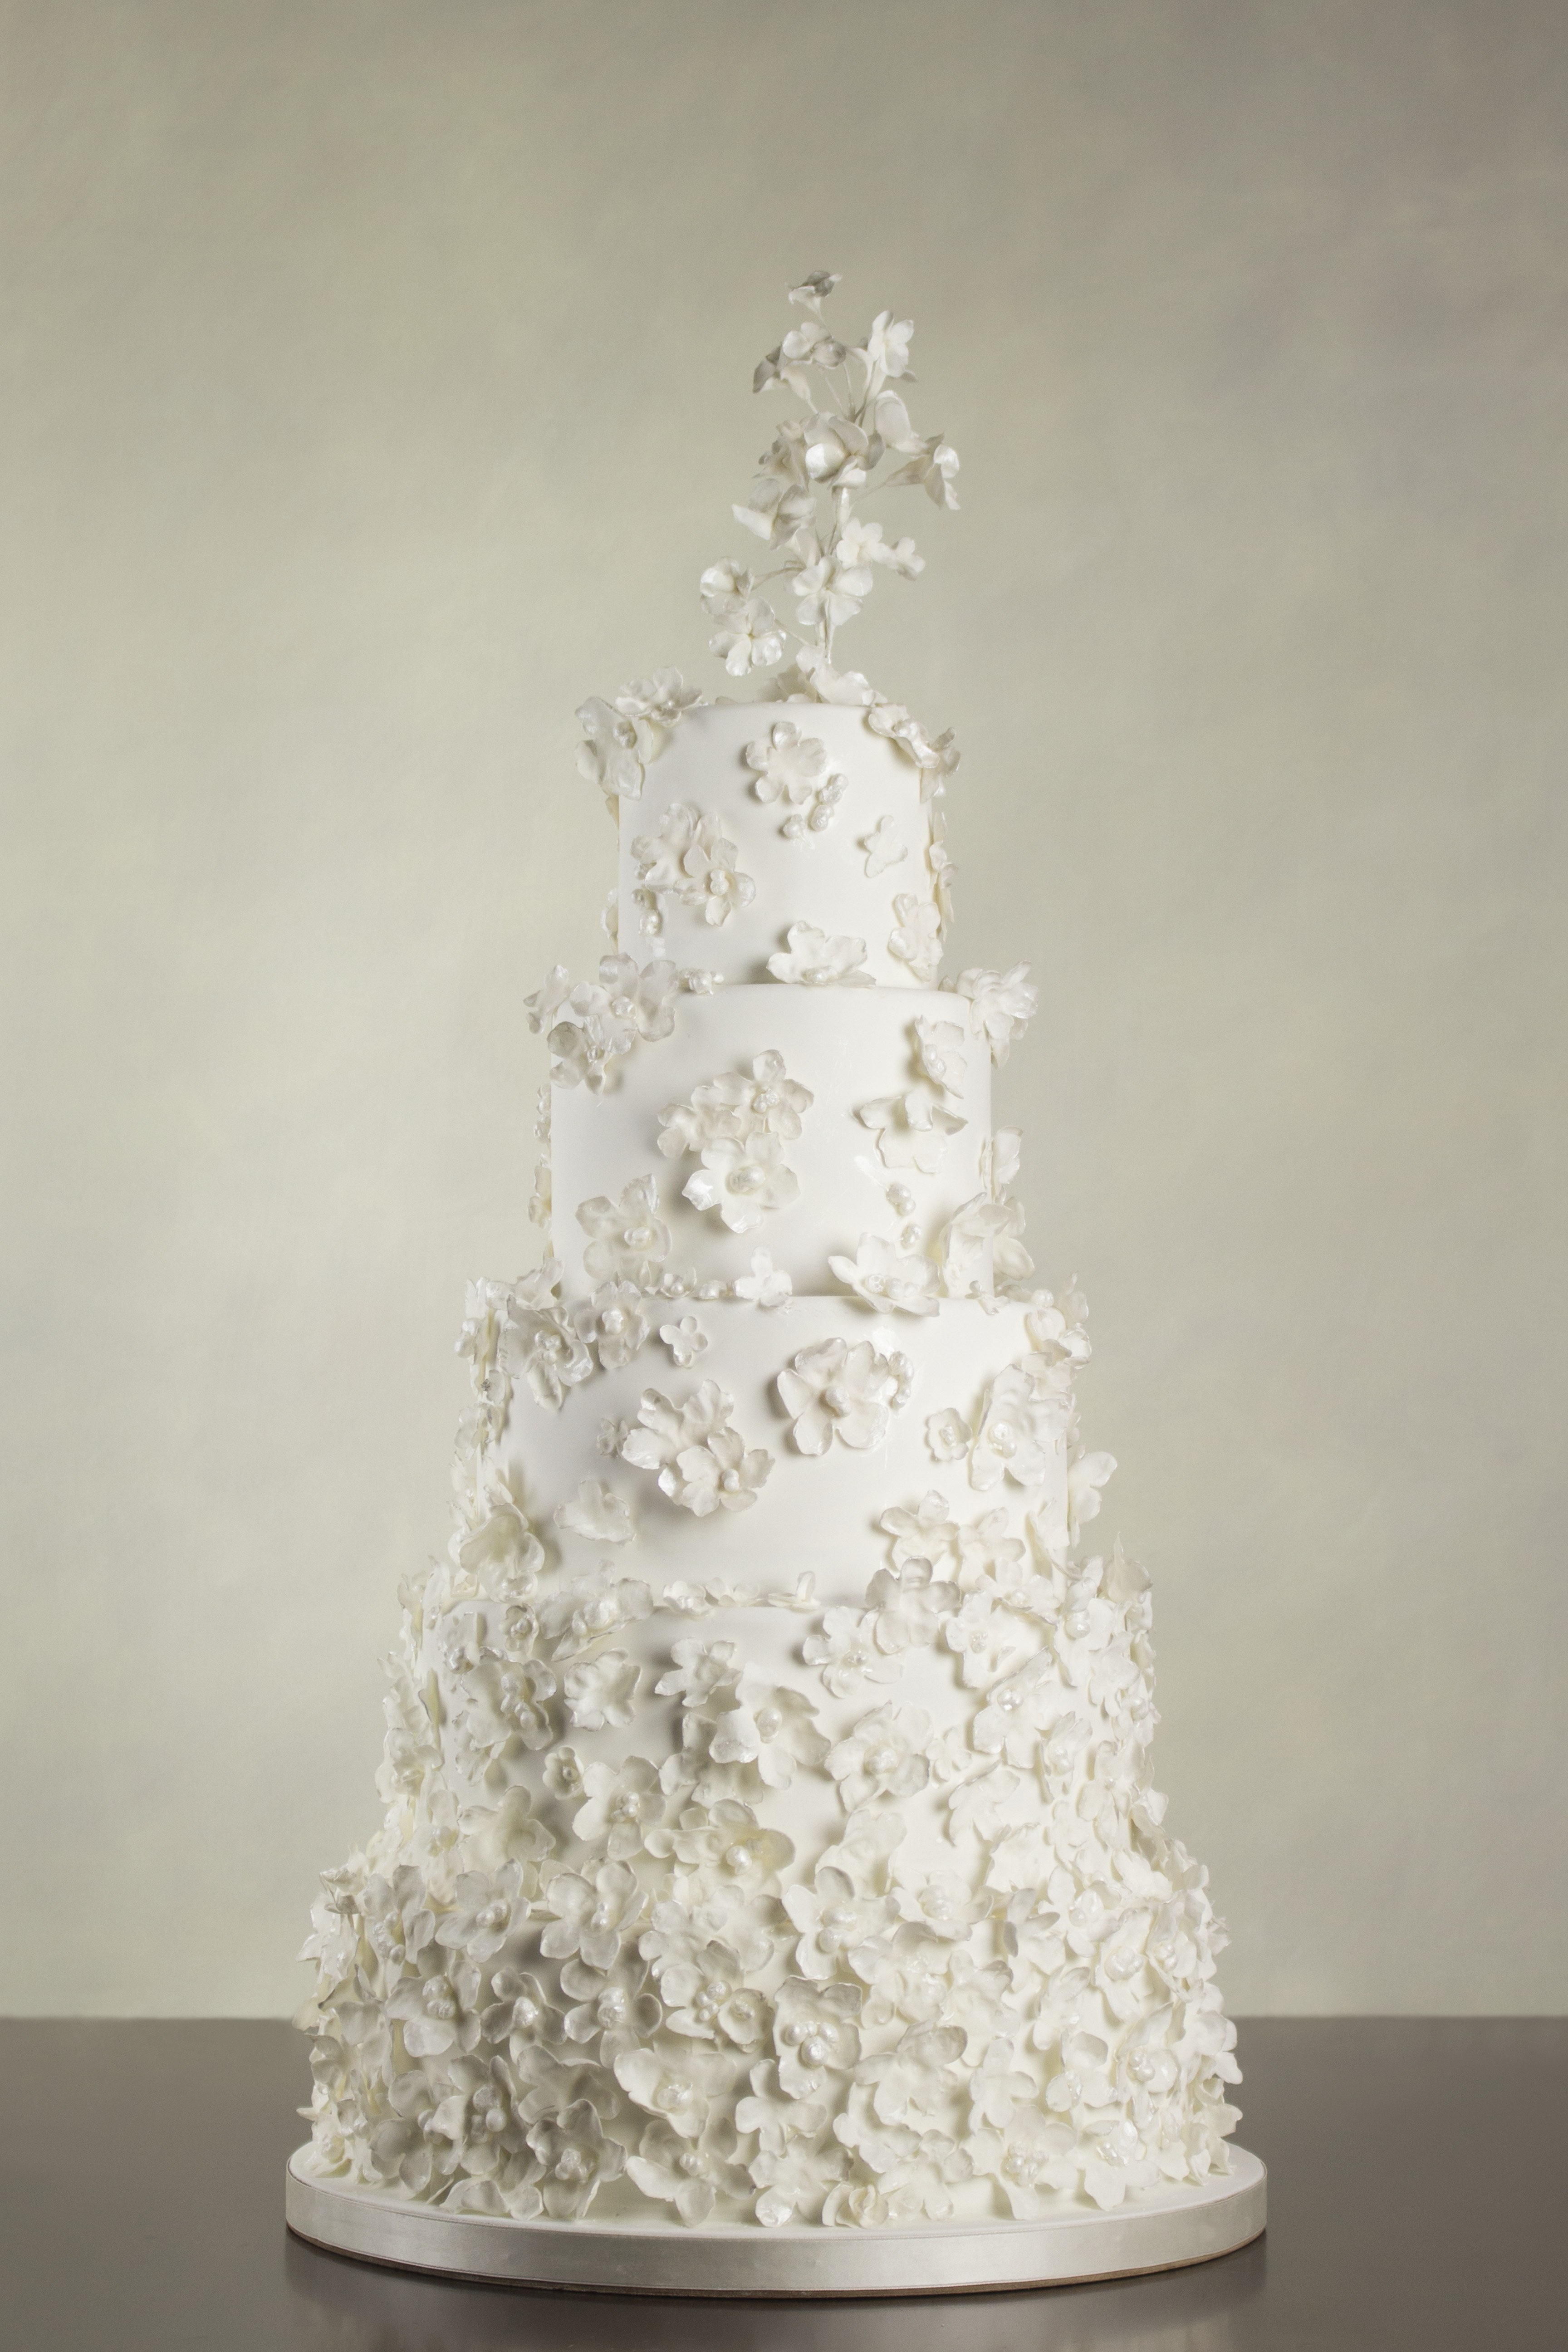 All white wedding cake covered in white flowers